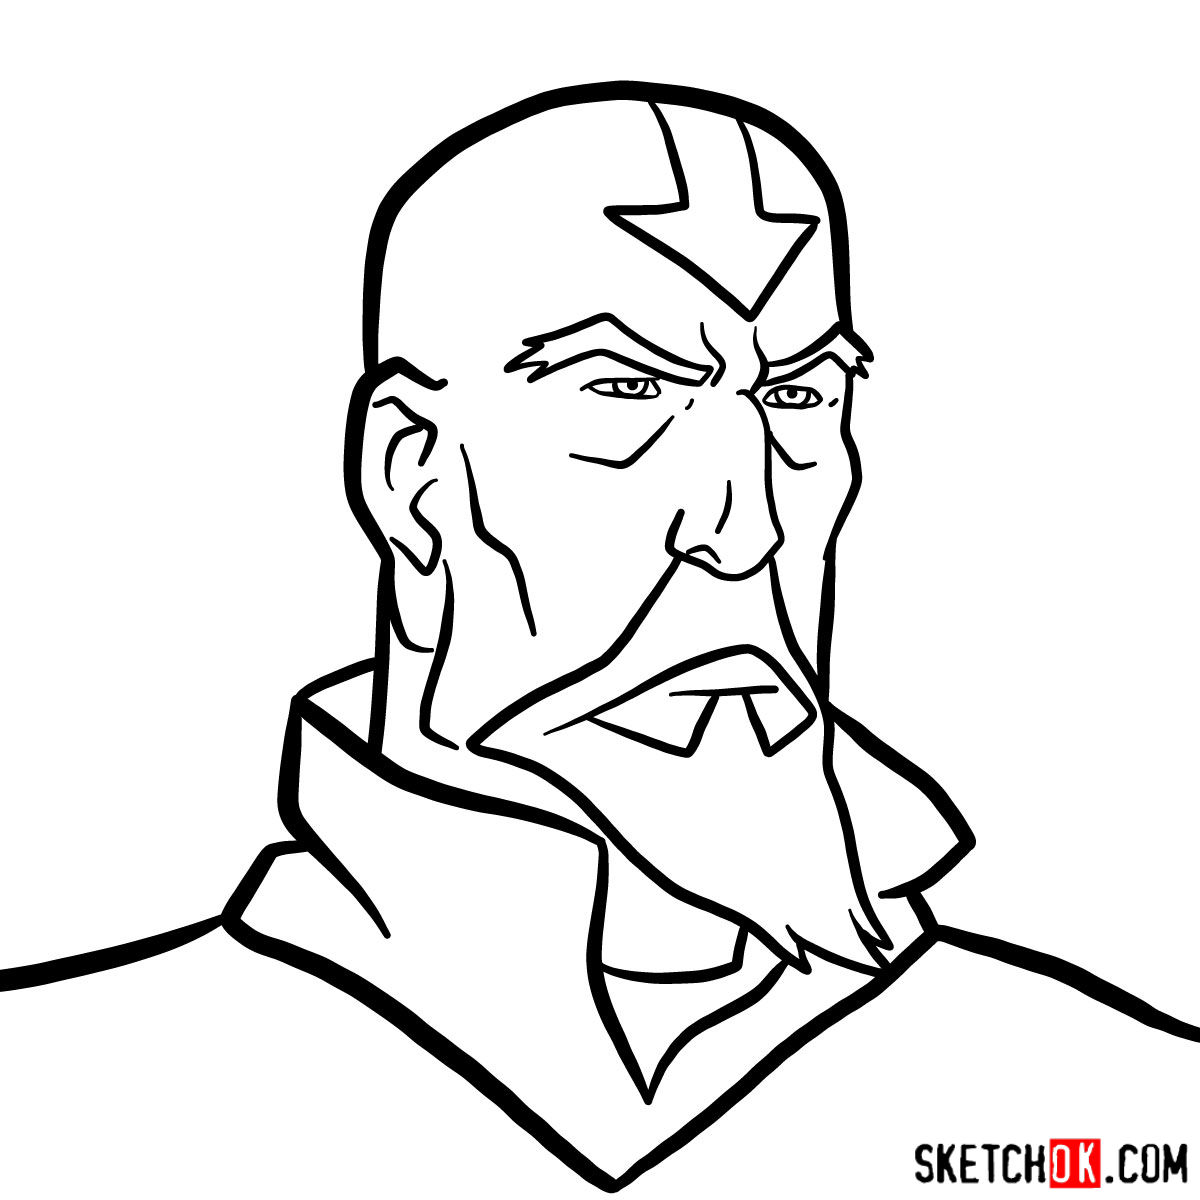 How to draw Tenzin's face - step 10